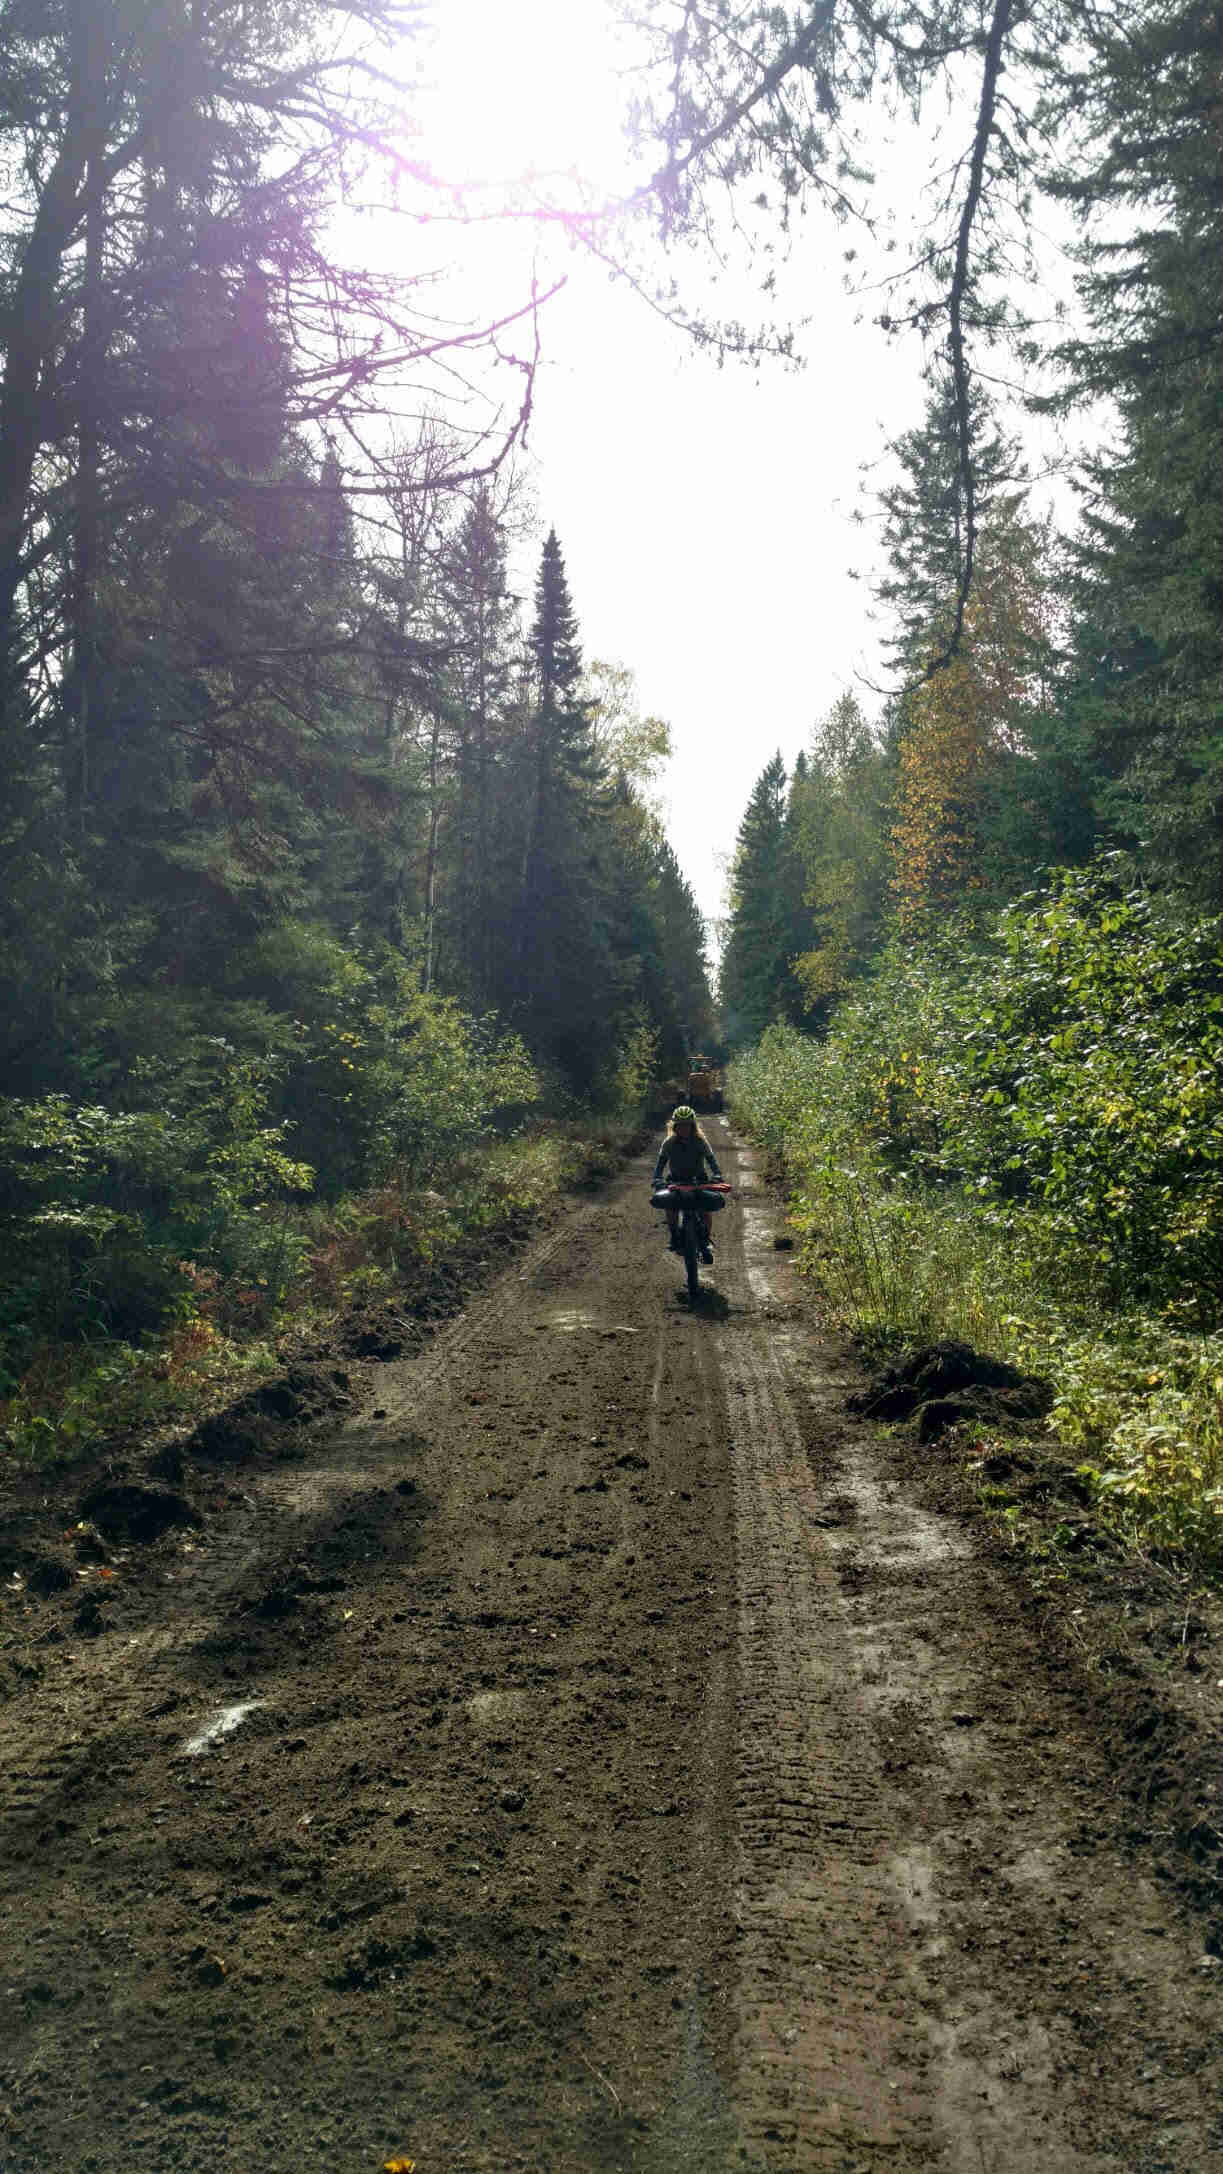 Front view of a cyclist riding down a narrow dirt road with trees on the sides